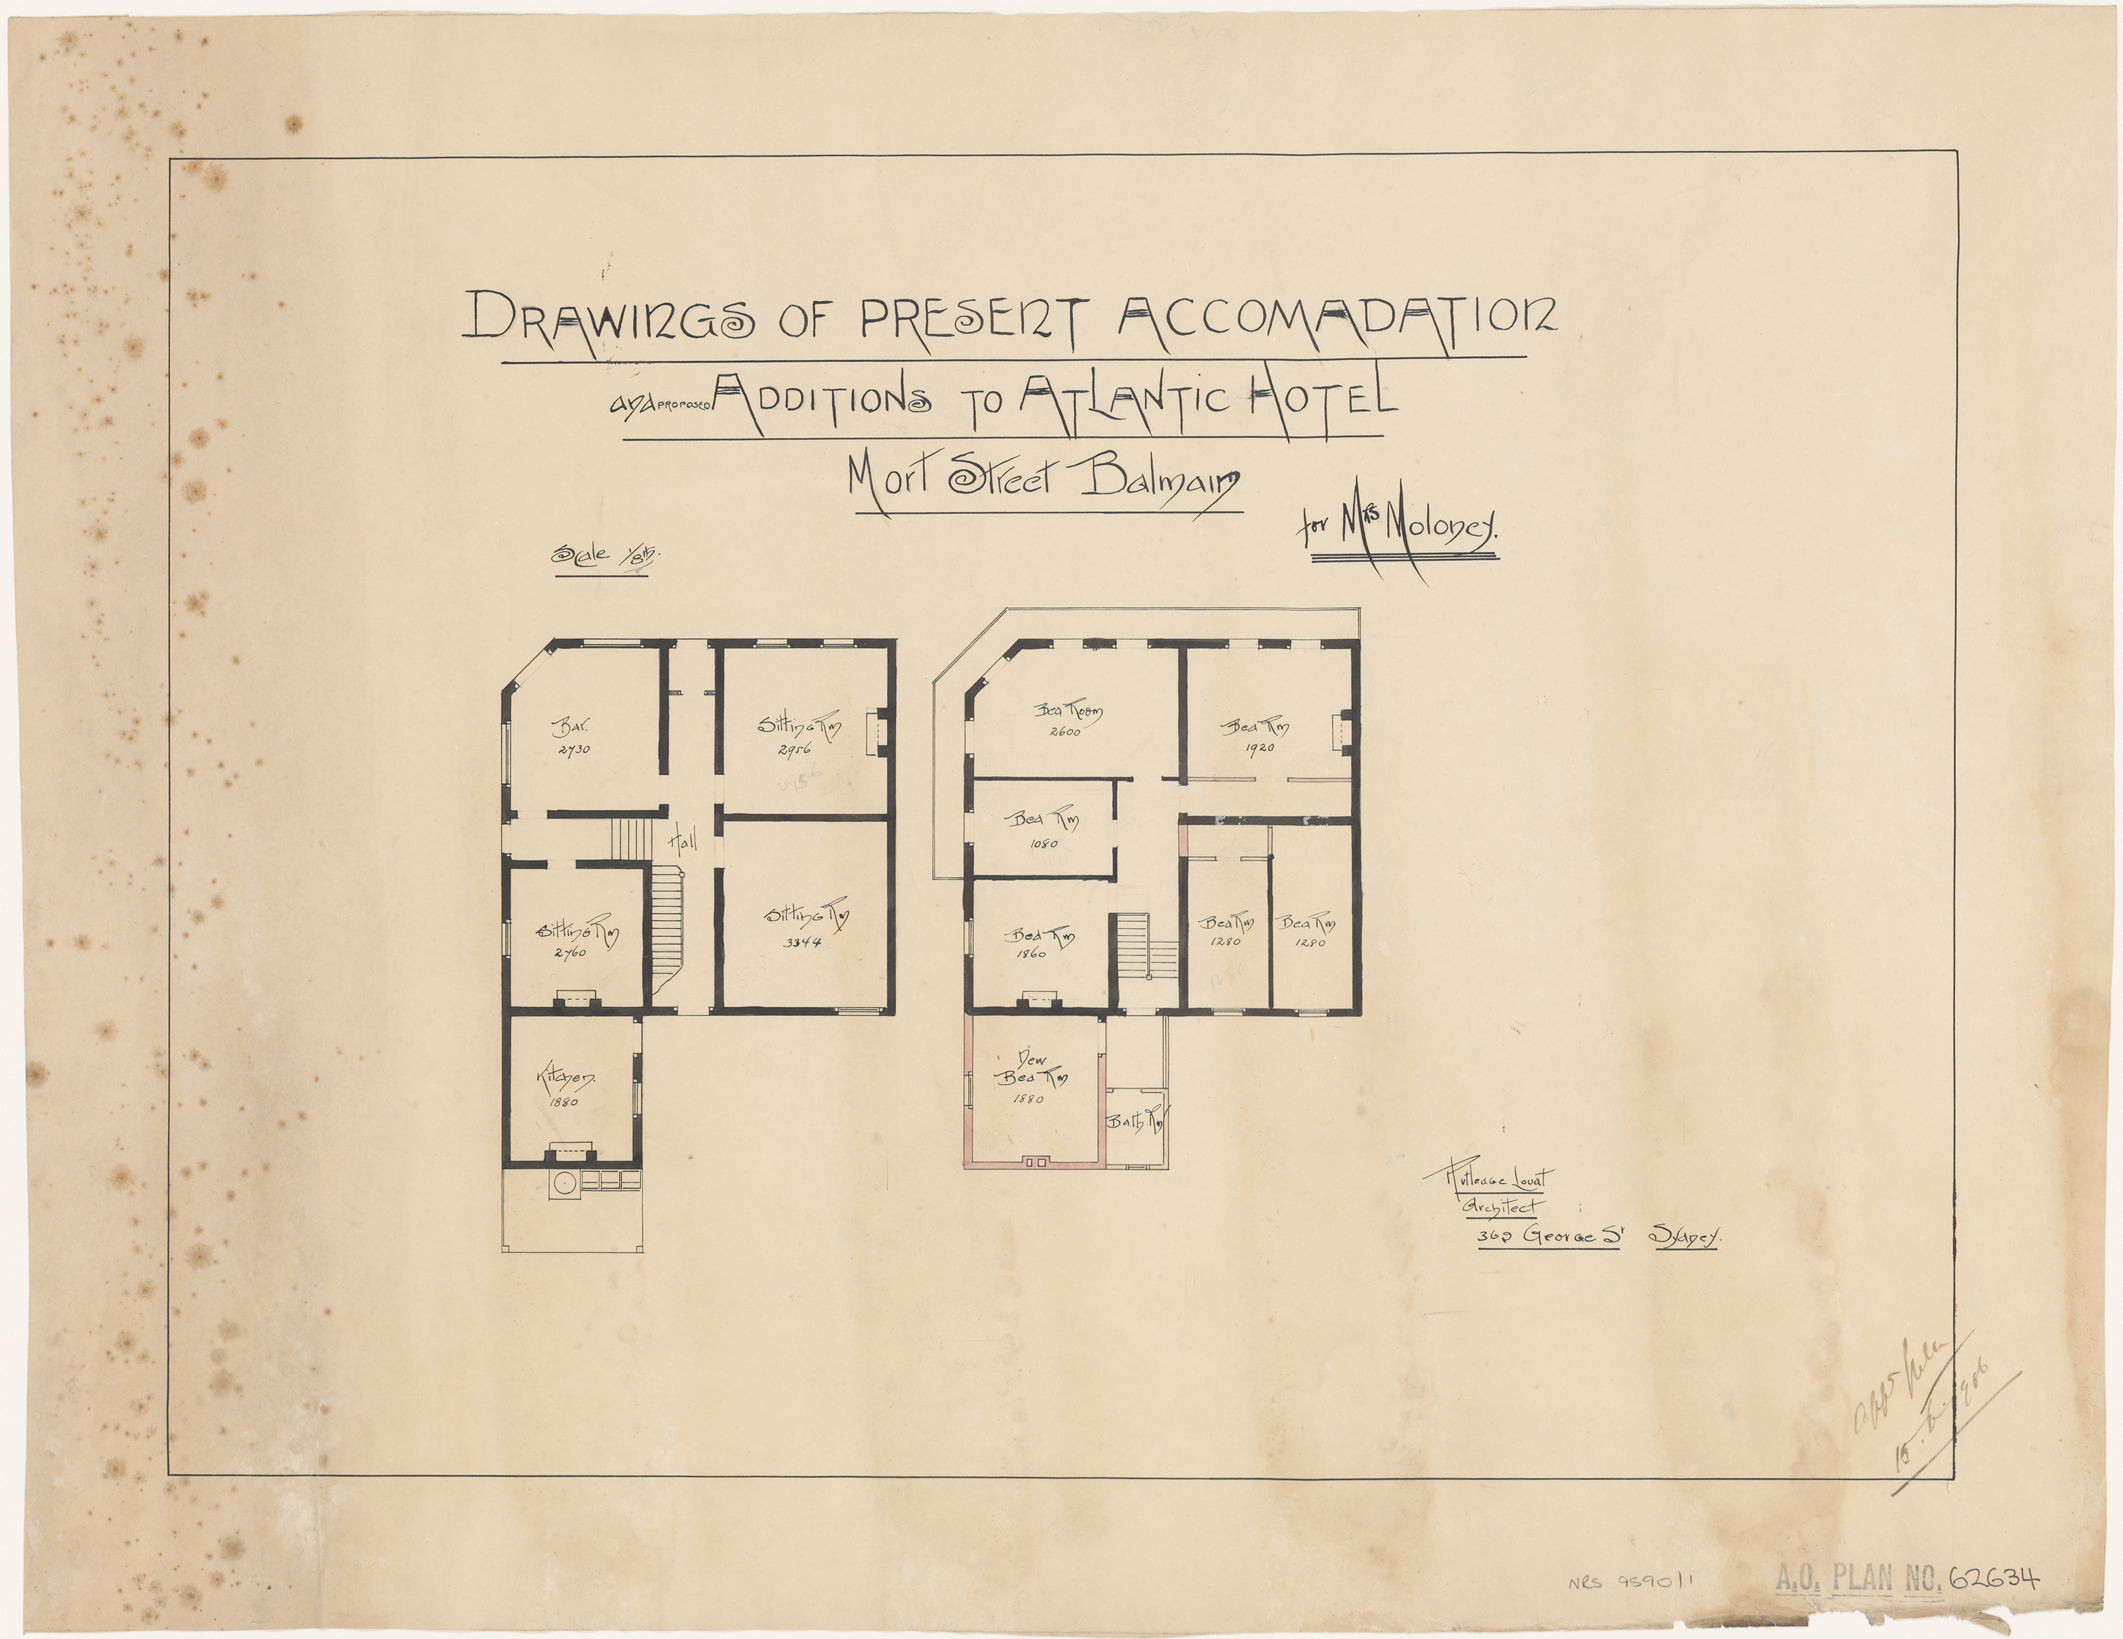 Atlantic Hotel, Mort Street, Balmain, Drawings of present accommodation and proposed additions, Applicant/owner, Mrs Moloney, Architect Rutledge Lovat, 369 George Street, Sydney, approved 10 June 1906